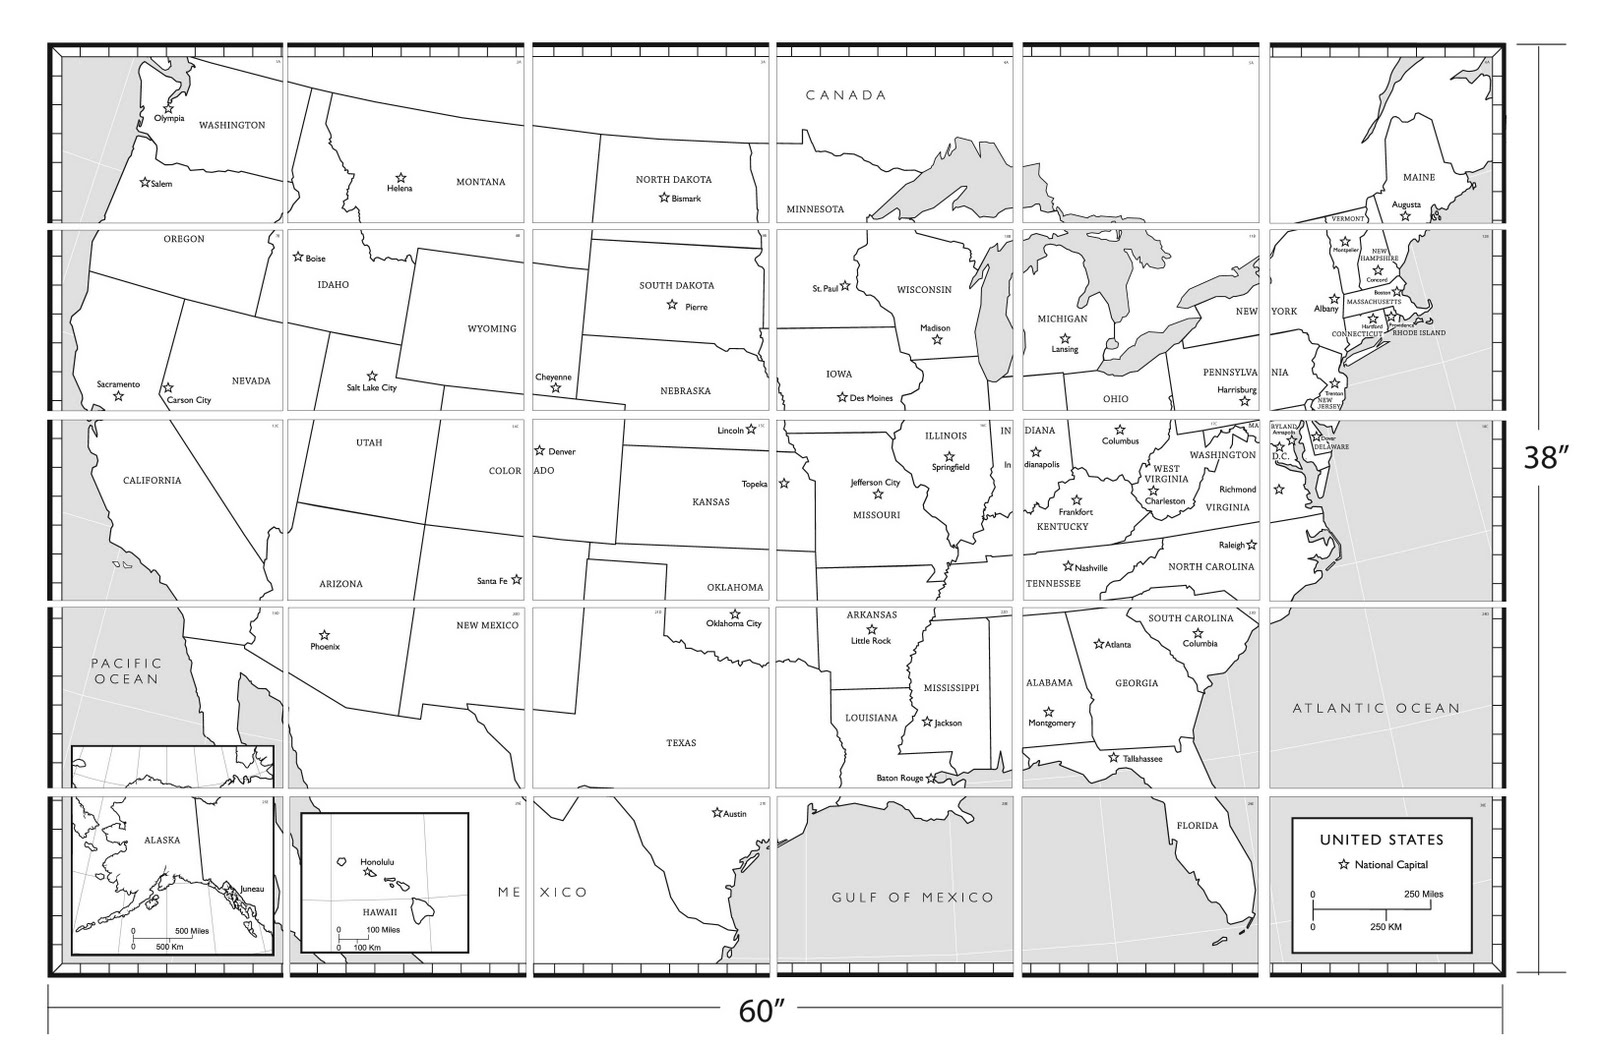 50 States Map Without Names